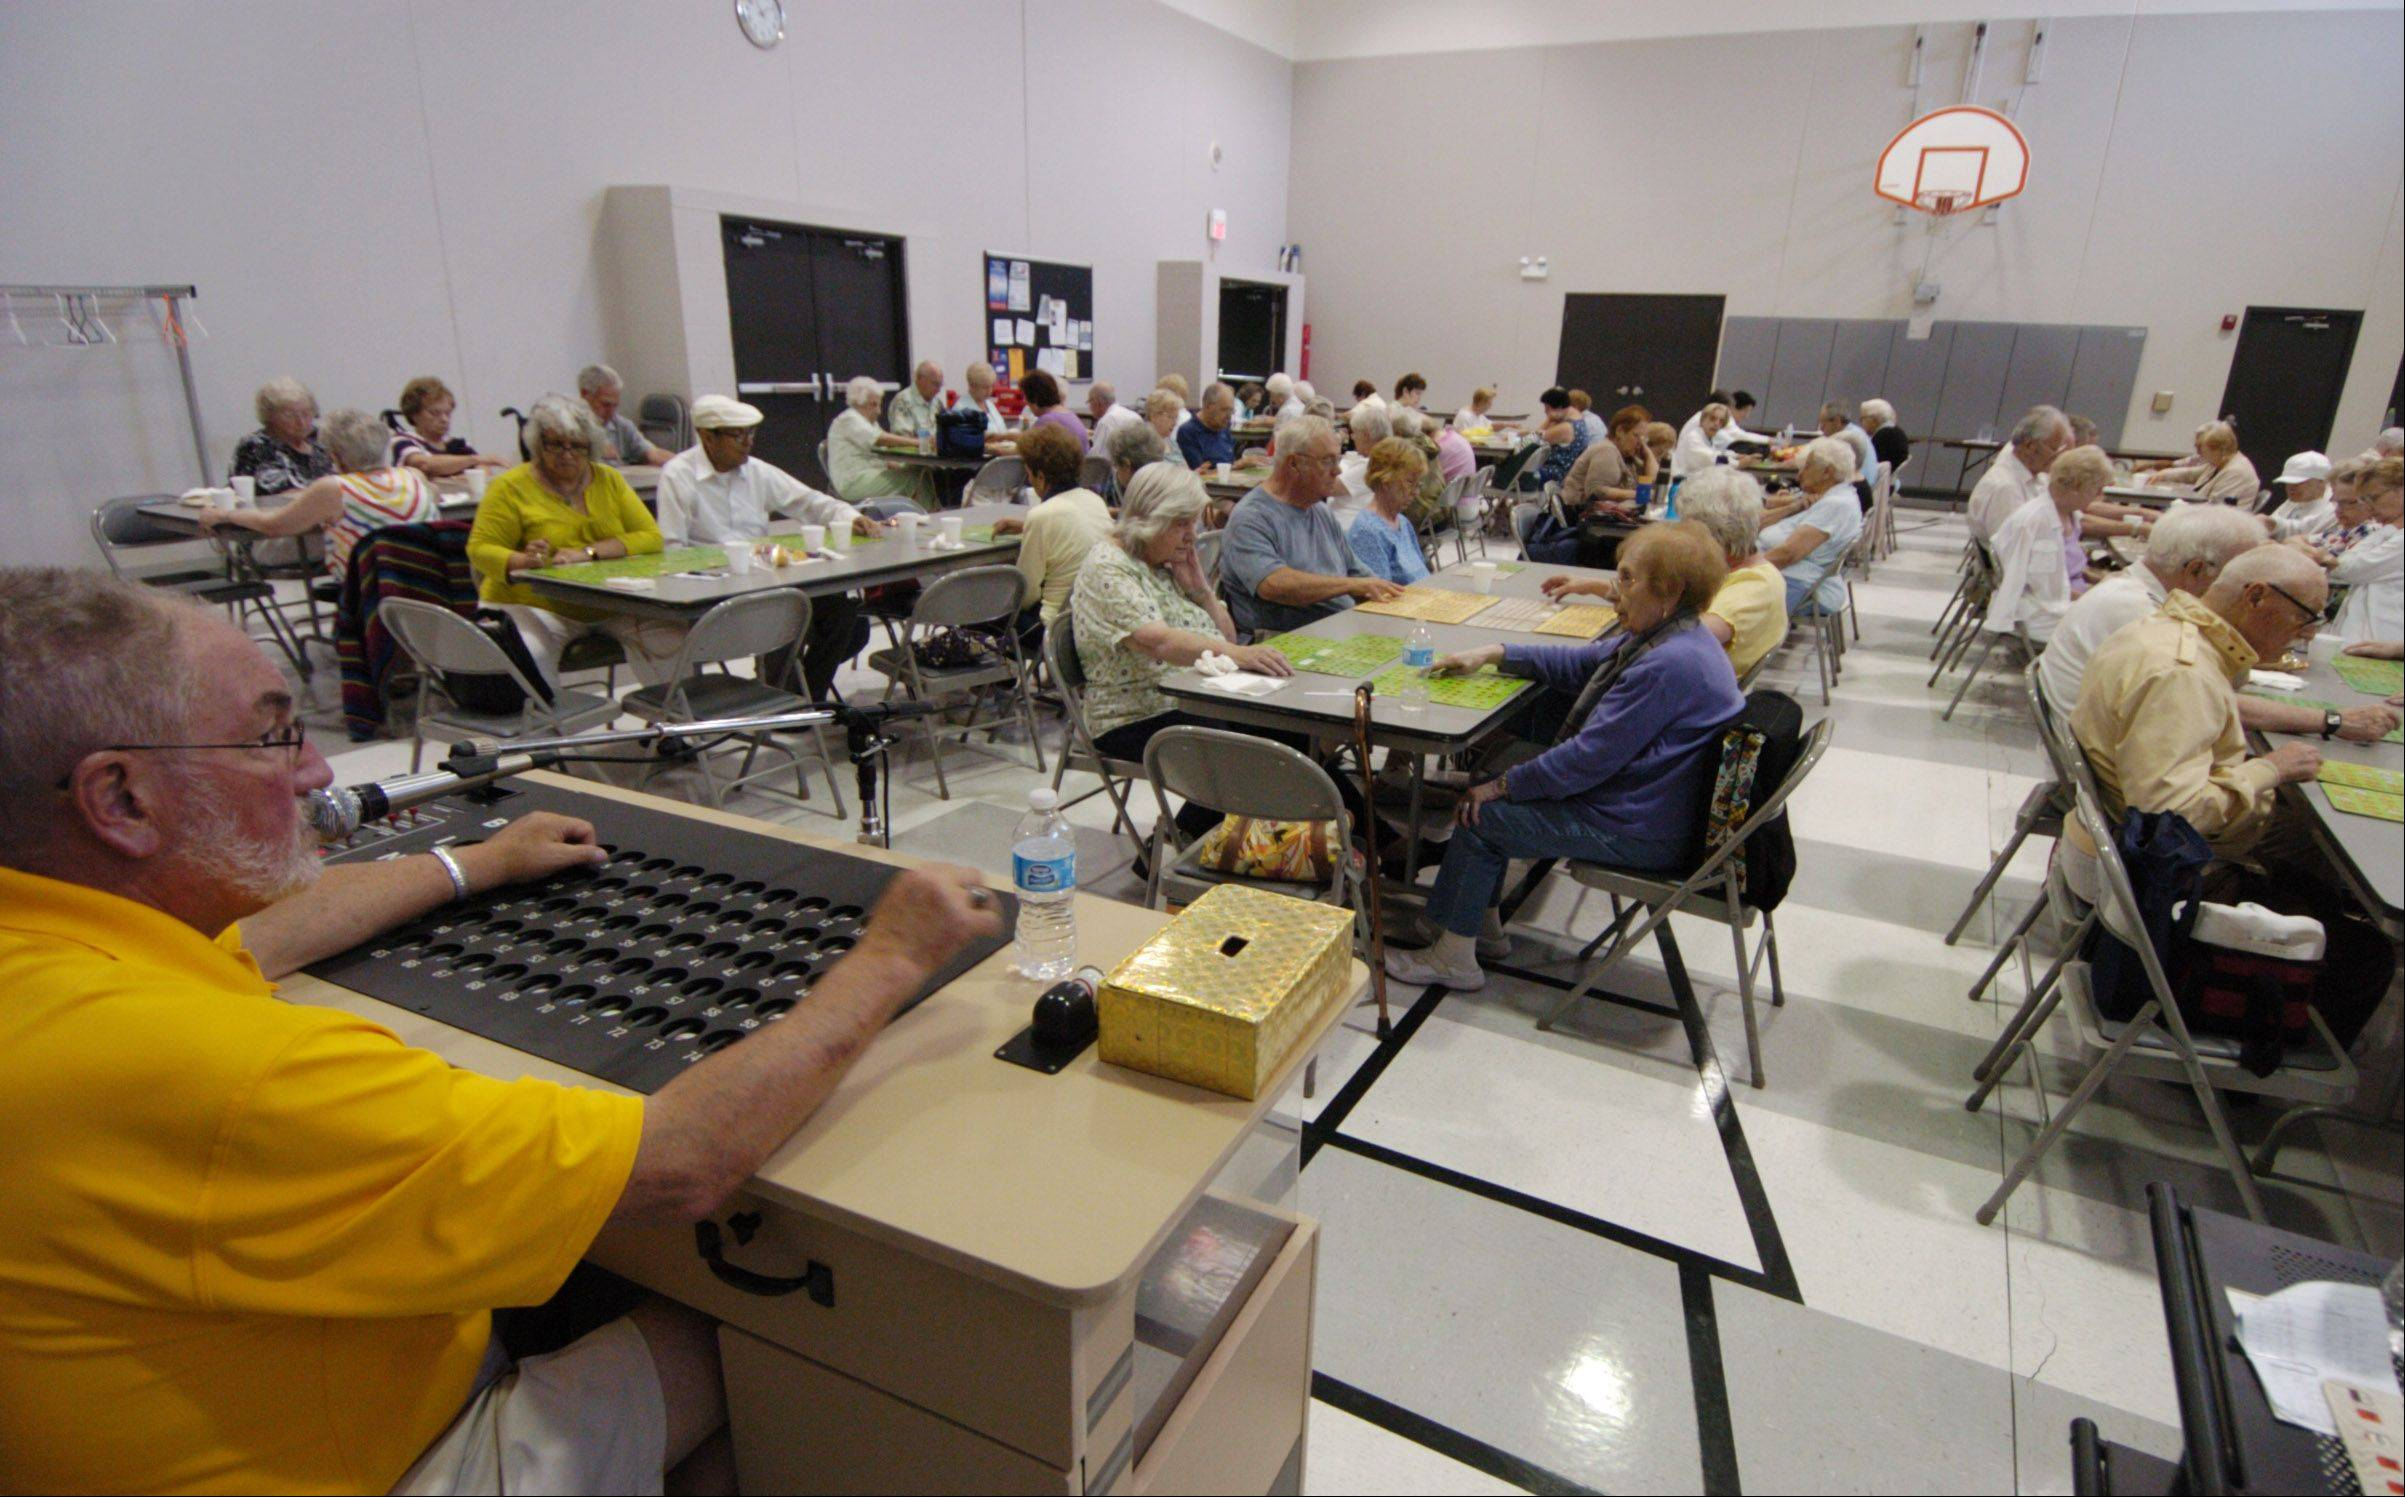 Schaumburg Park District Commissioner Bob Schmidt calls bingo numbers for seniors playing at the Schaumburg Township Hall Thursday.